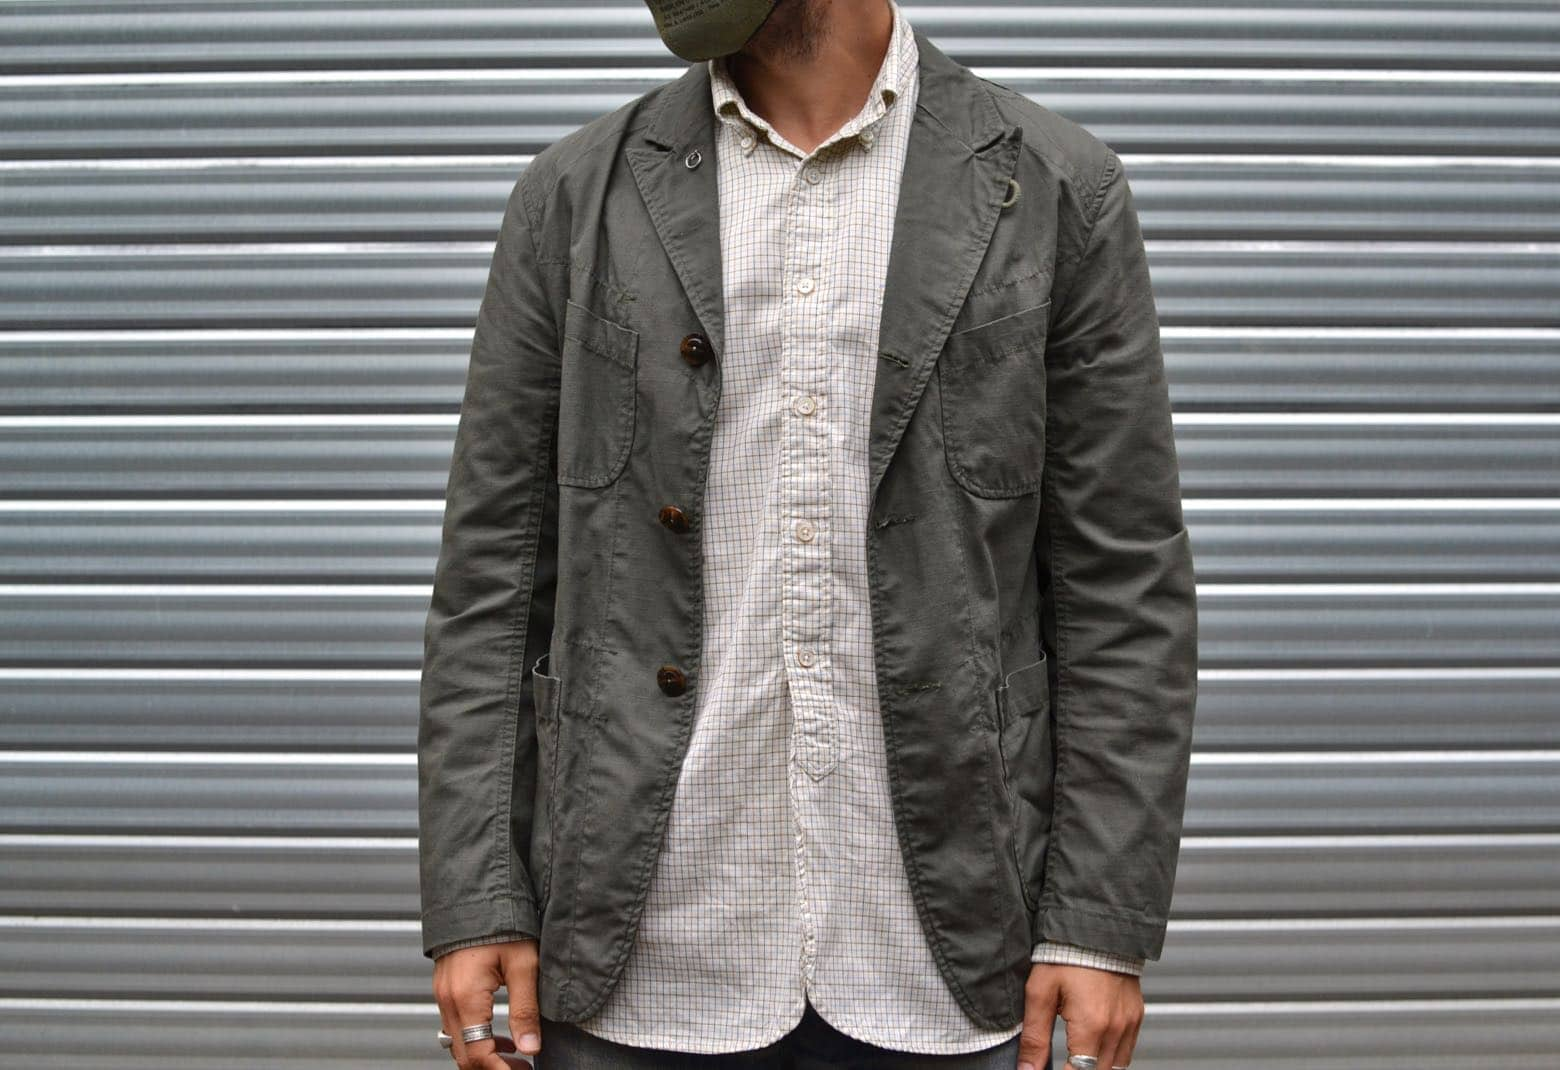 conseil style homme porter blazer casual militaire bedford jacket engineered garments BD shirt